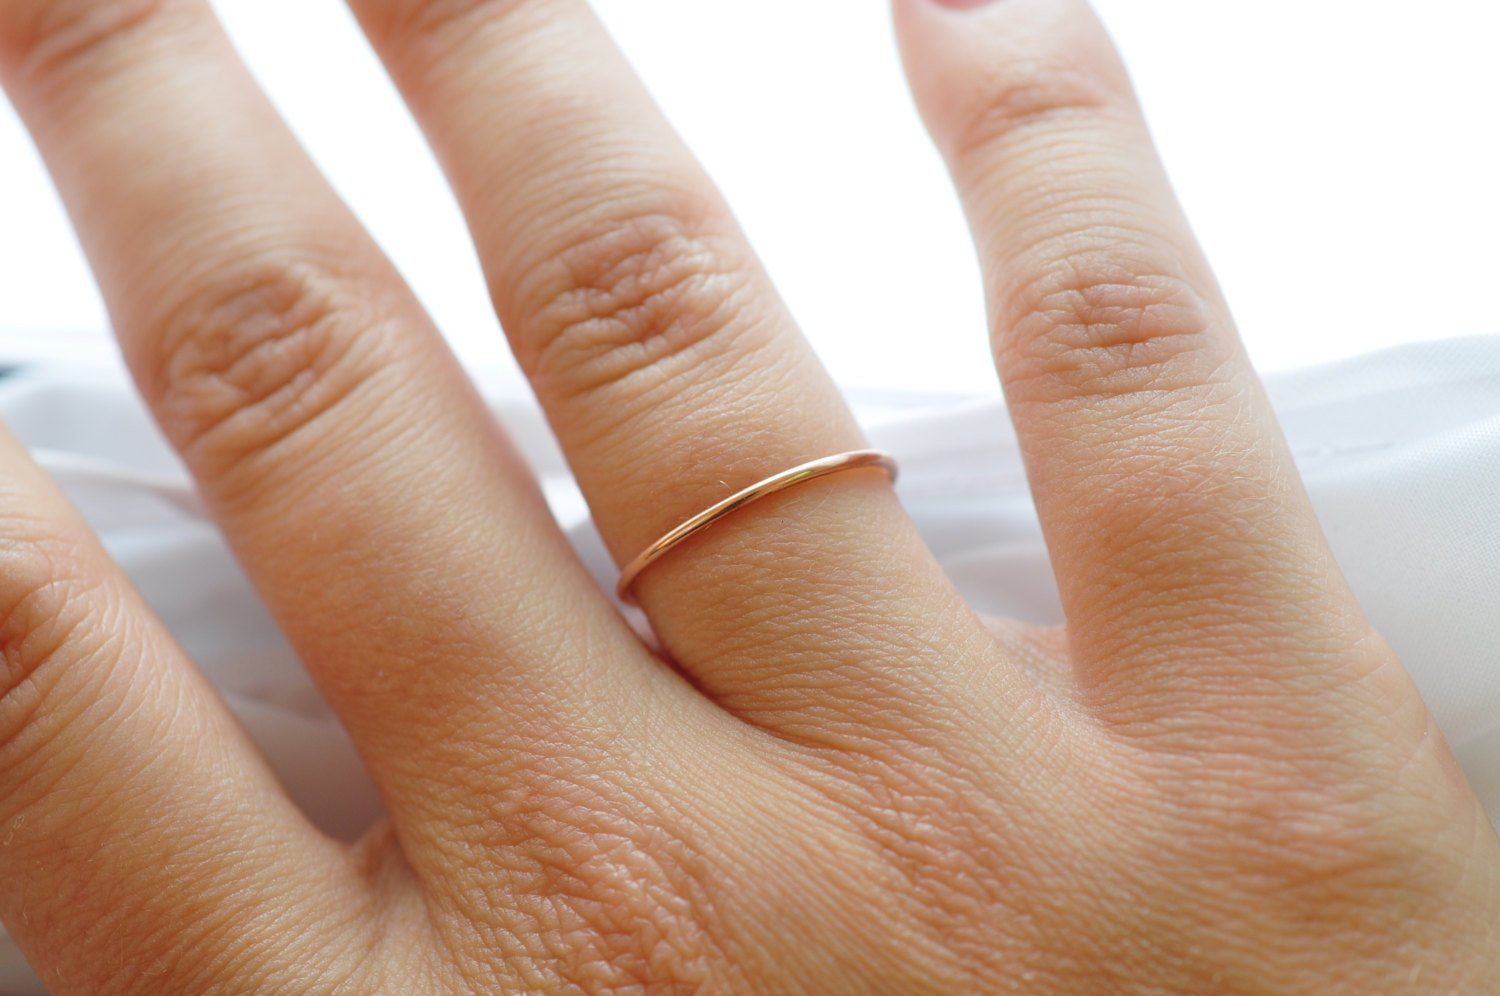 Rose Gold Stacking Rings: Minimalist Jewelry, Gifts for Friends